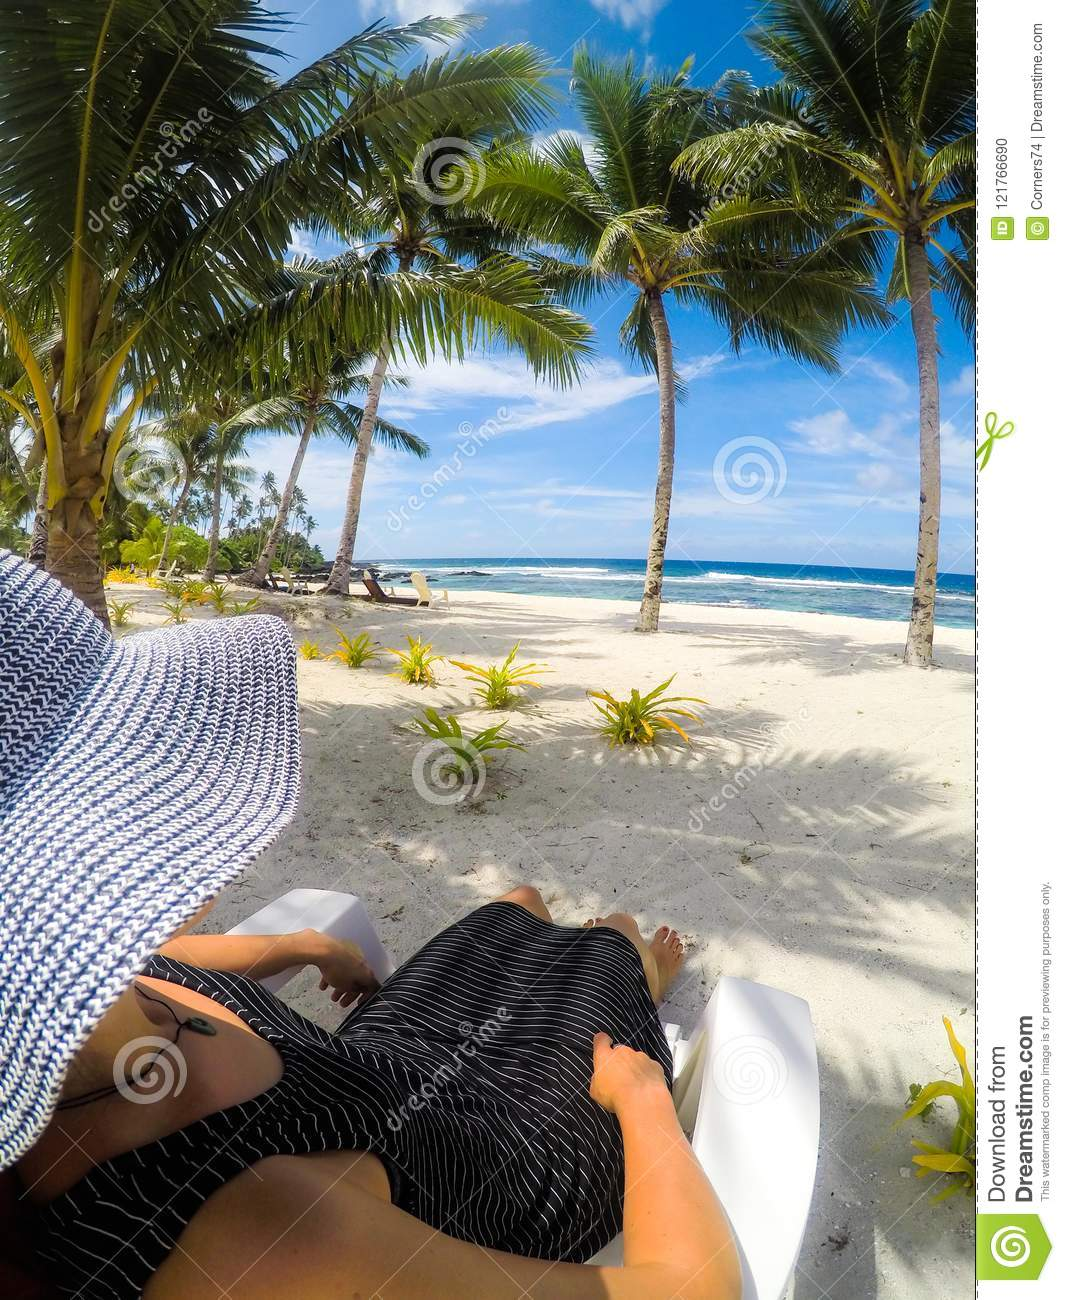 Over Shoulder POV: Woman In Hat And Dress On Sun Lounger